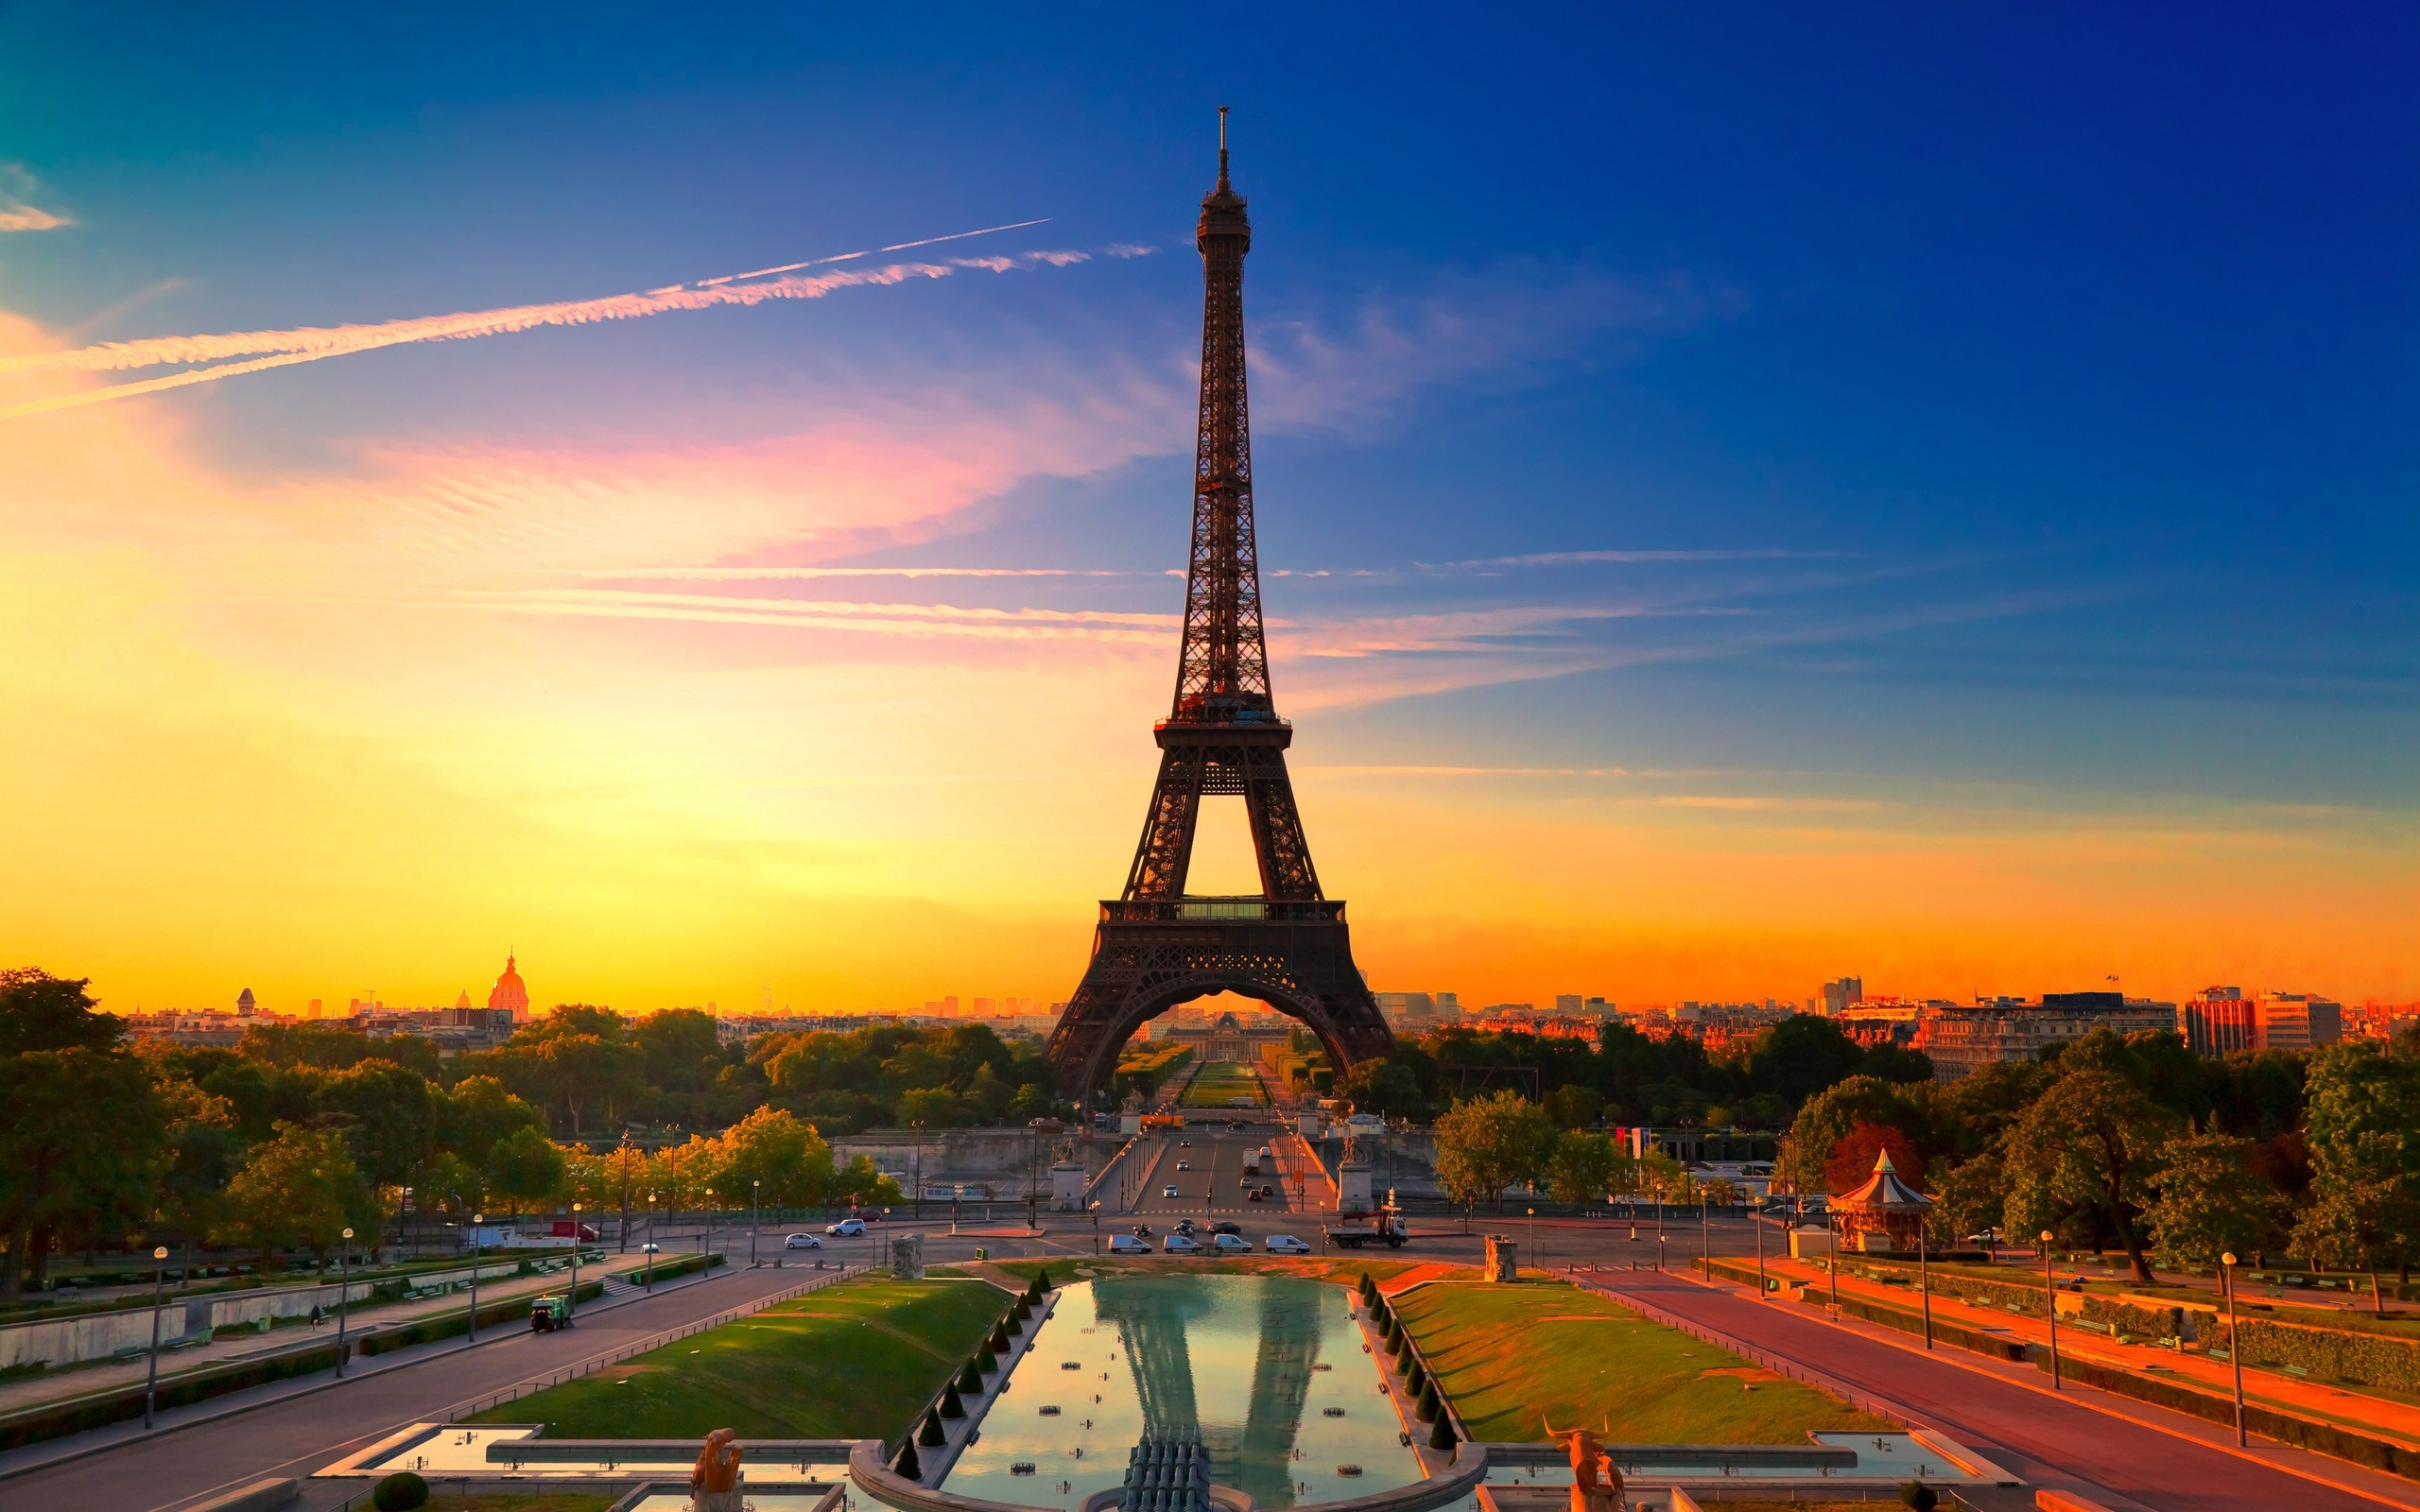 sundown-paris.jpg